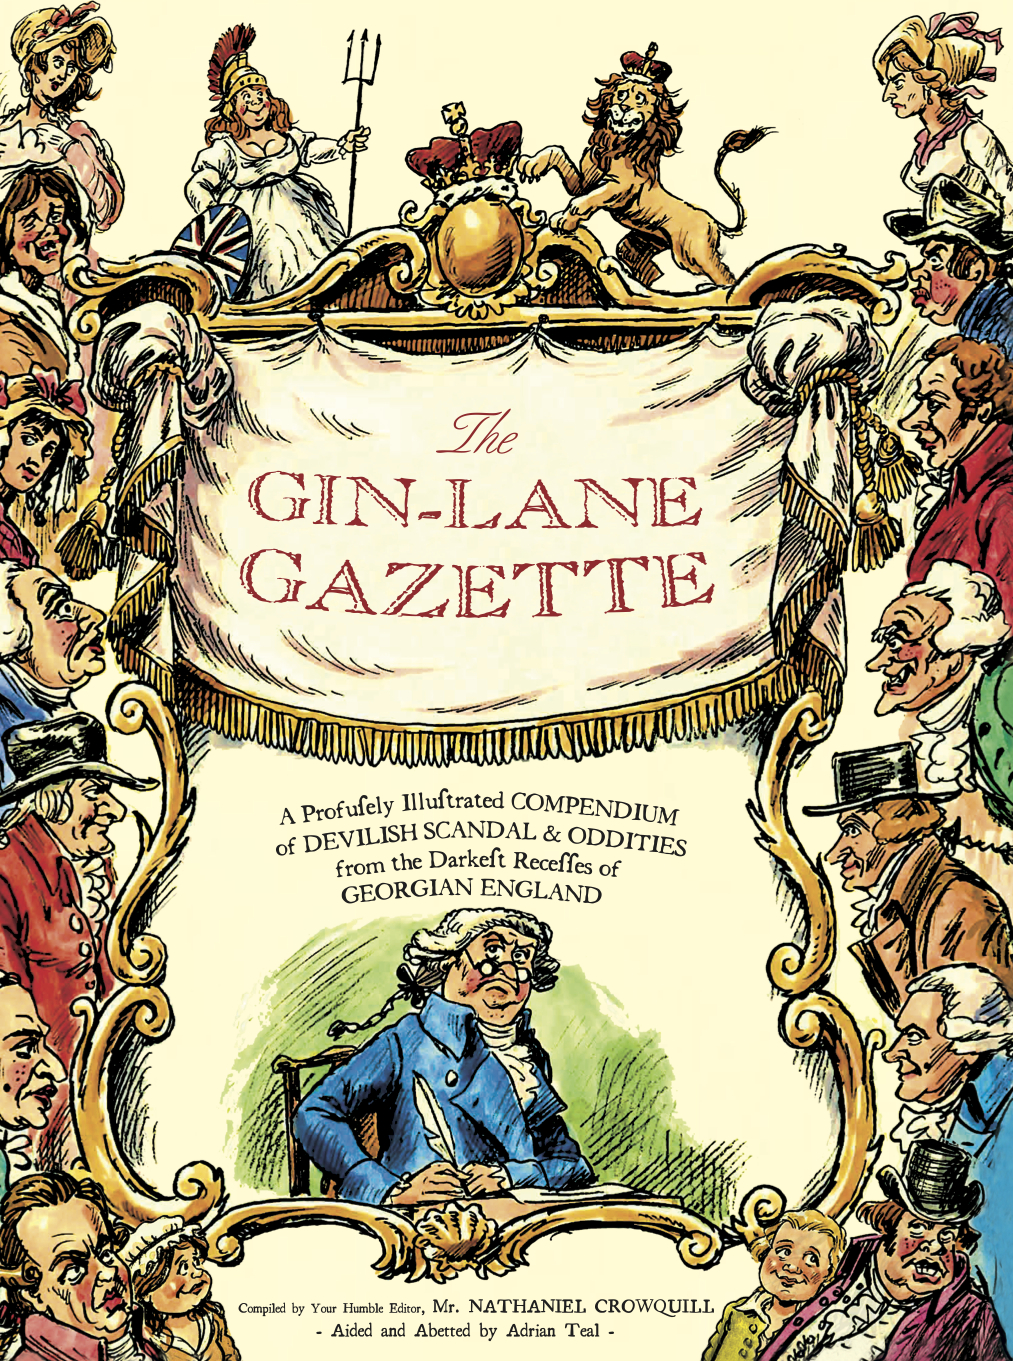 The Gin-Lane Gazette